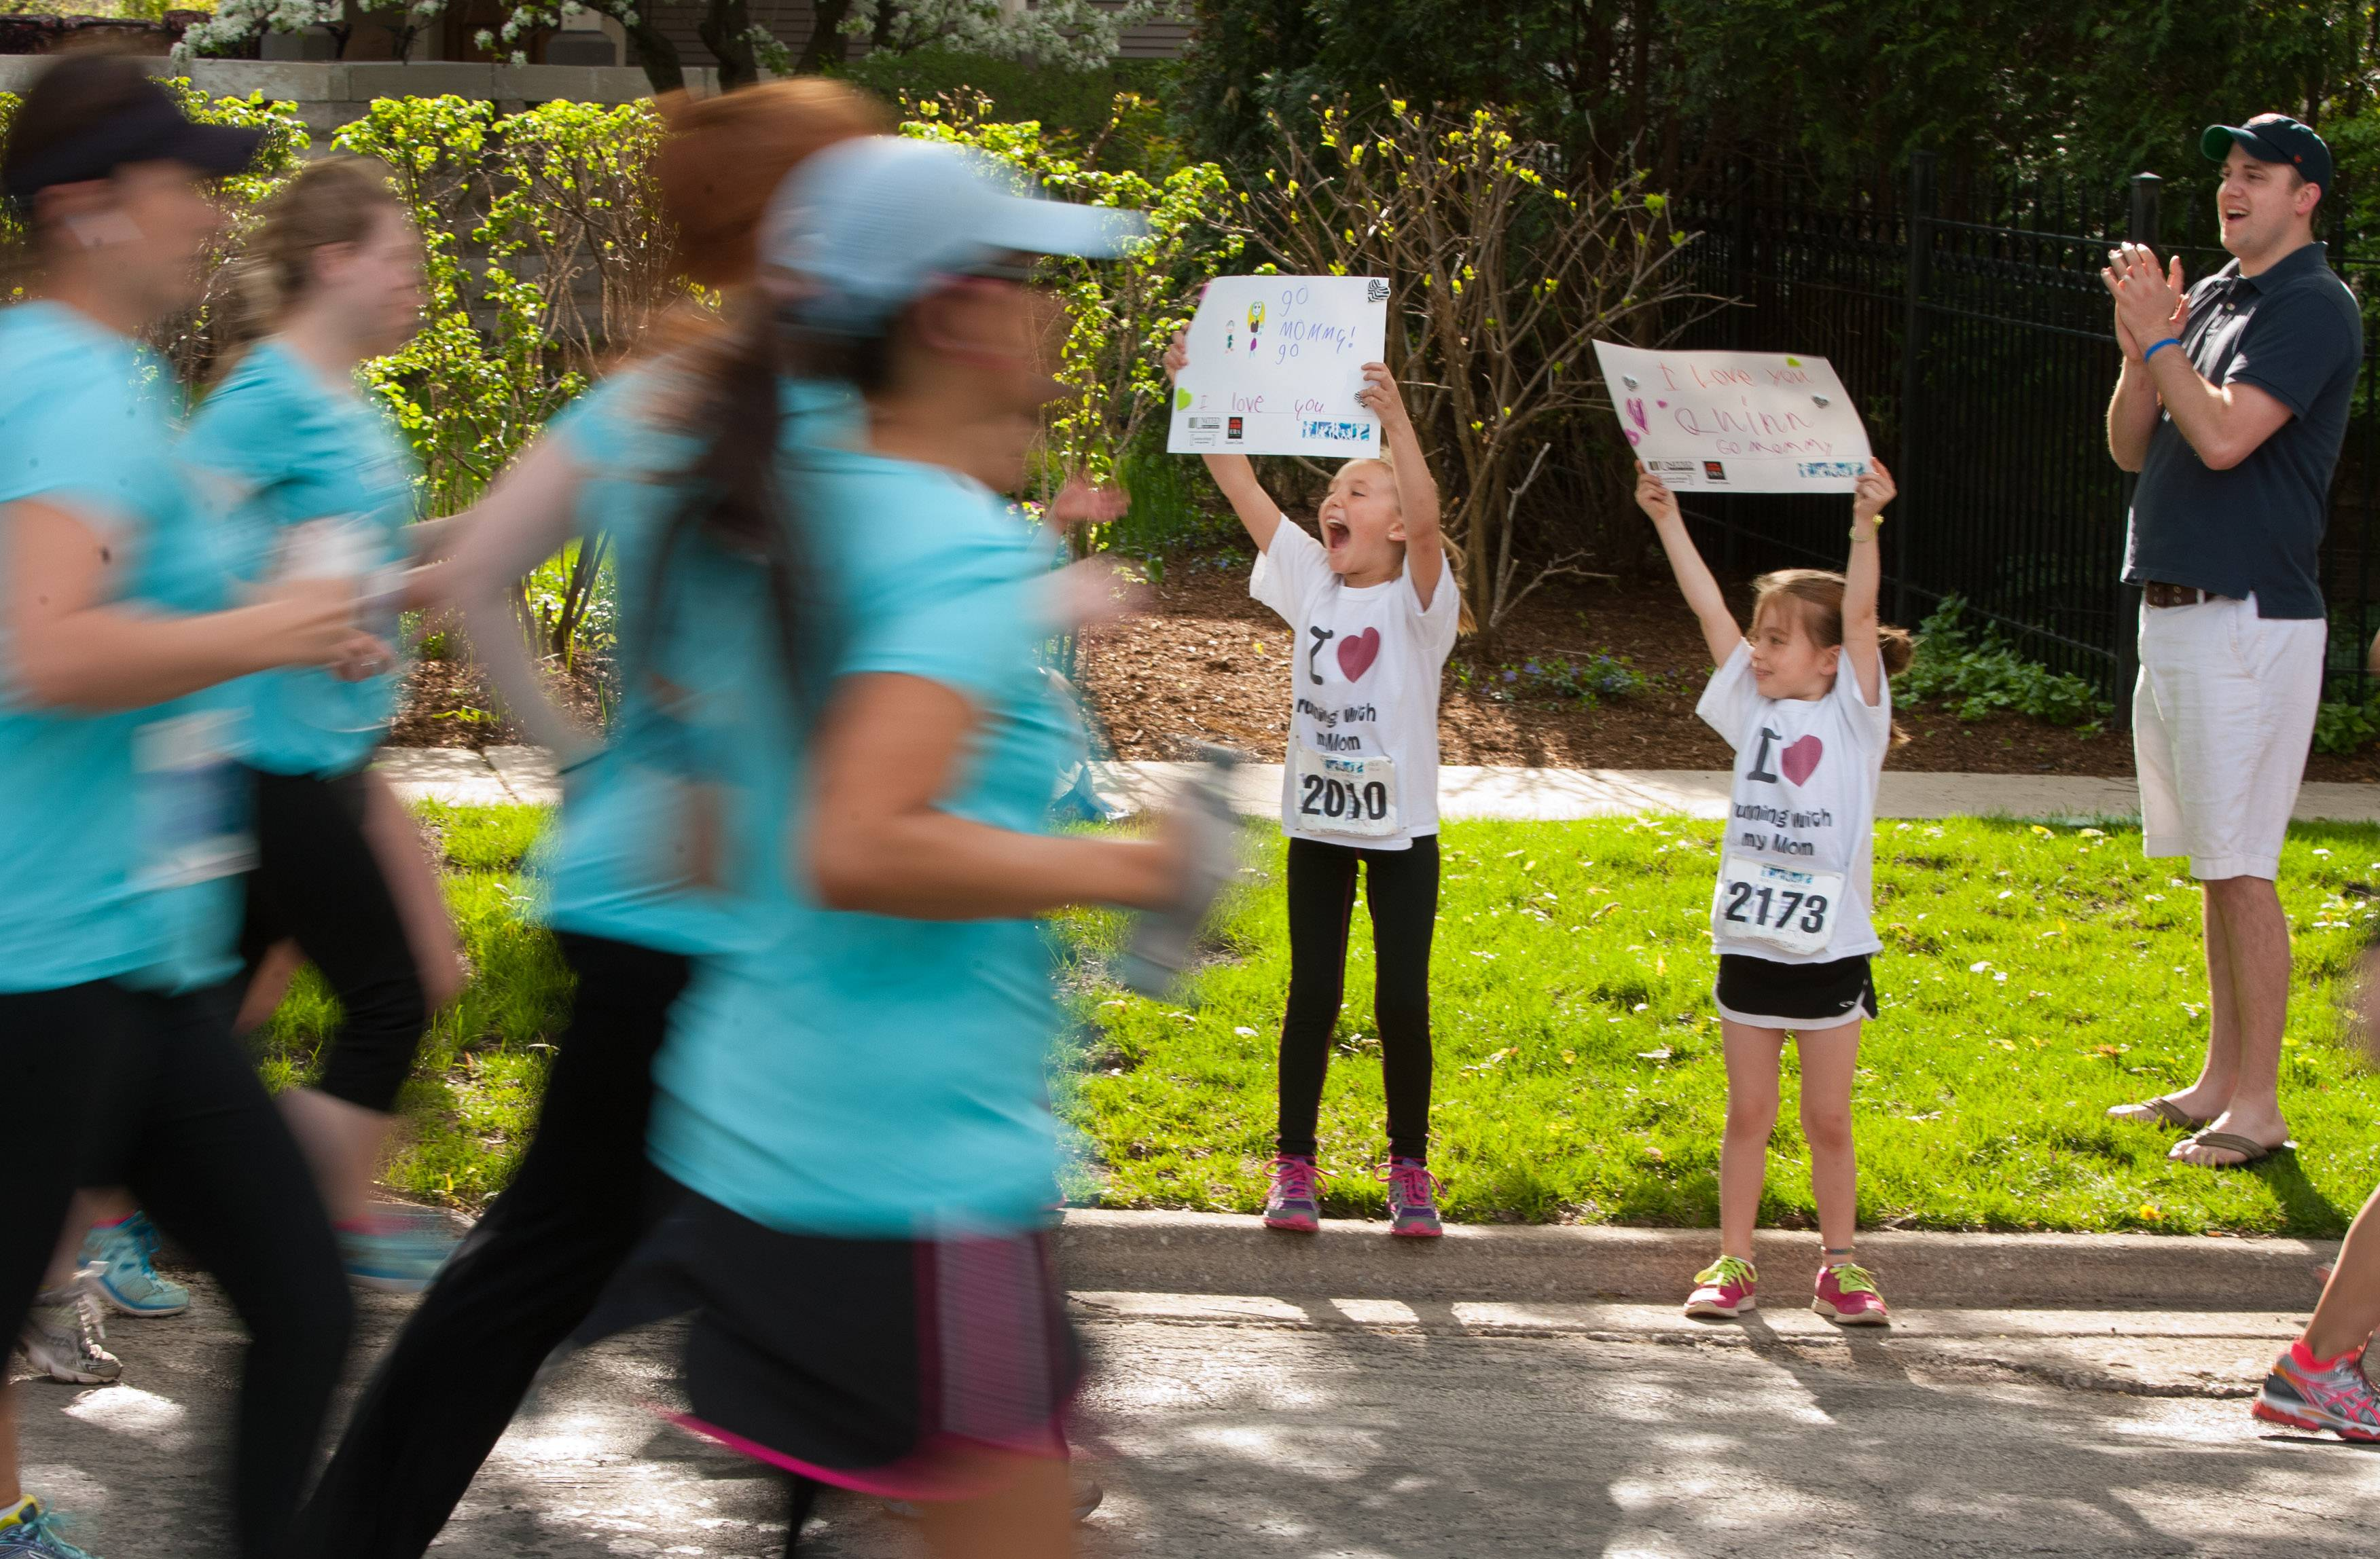 Kylie Frigo, 7, of Naperville, and Quinn Shulski, 6, of Lake in the Hills, cheer and look for their mothers who are participating in the Run Like a Mother 5K Hinsdale race. The run raises money to enrich the lives of children with Angelman syndrome.